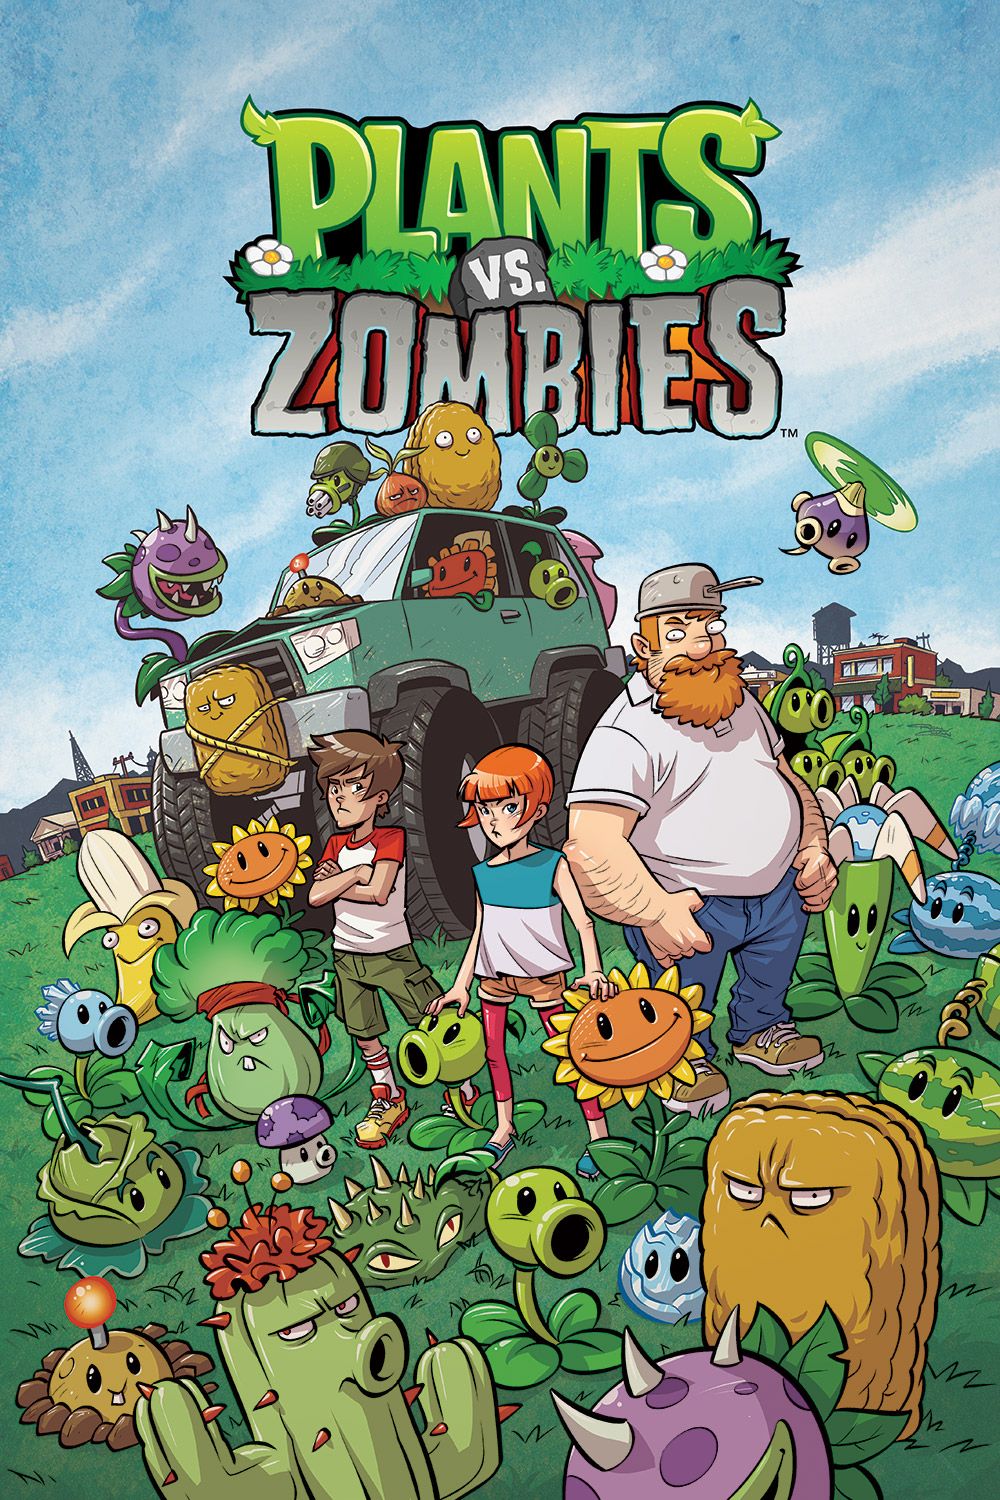 Plants vs Zombies #9